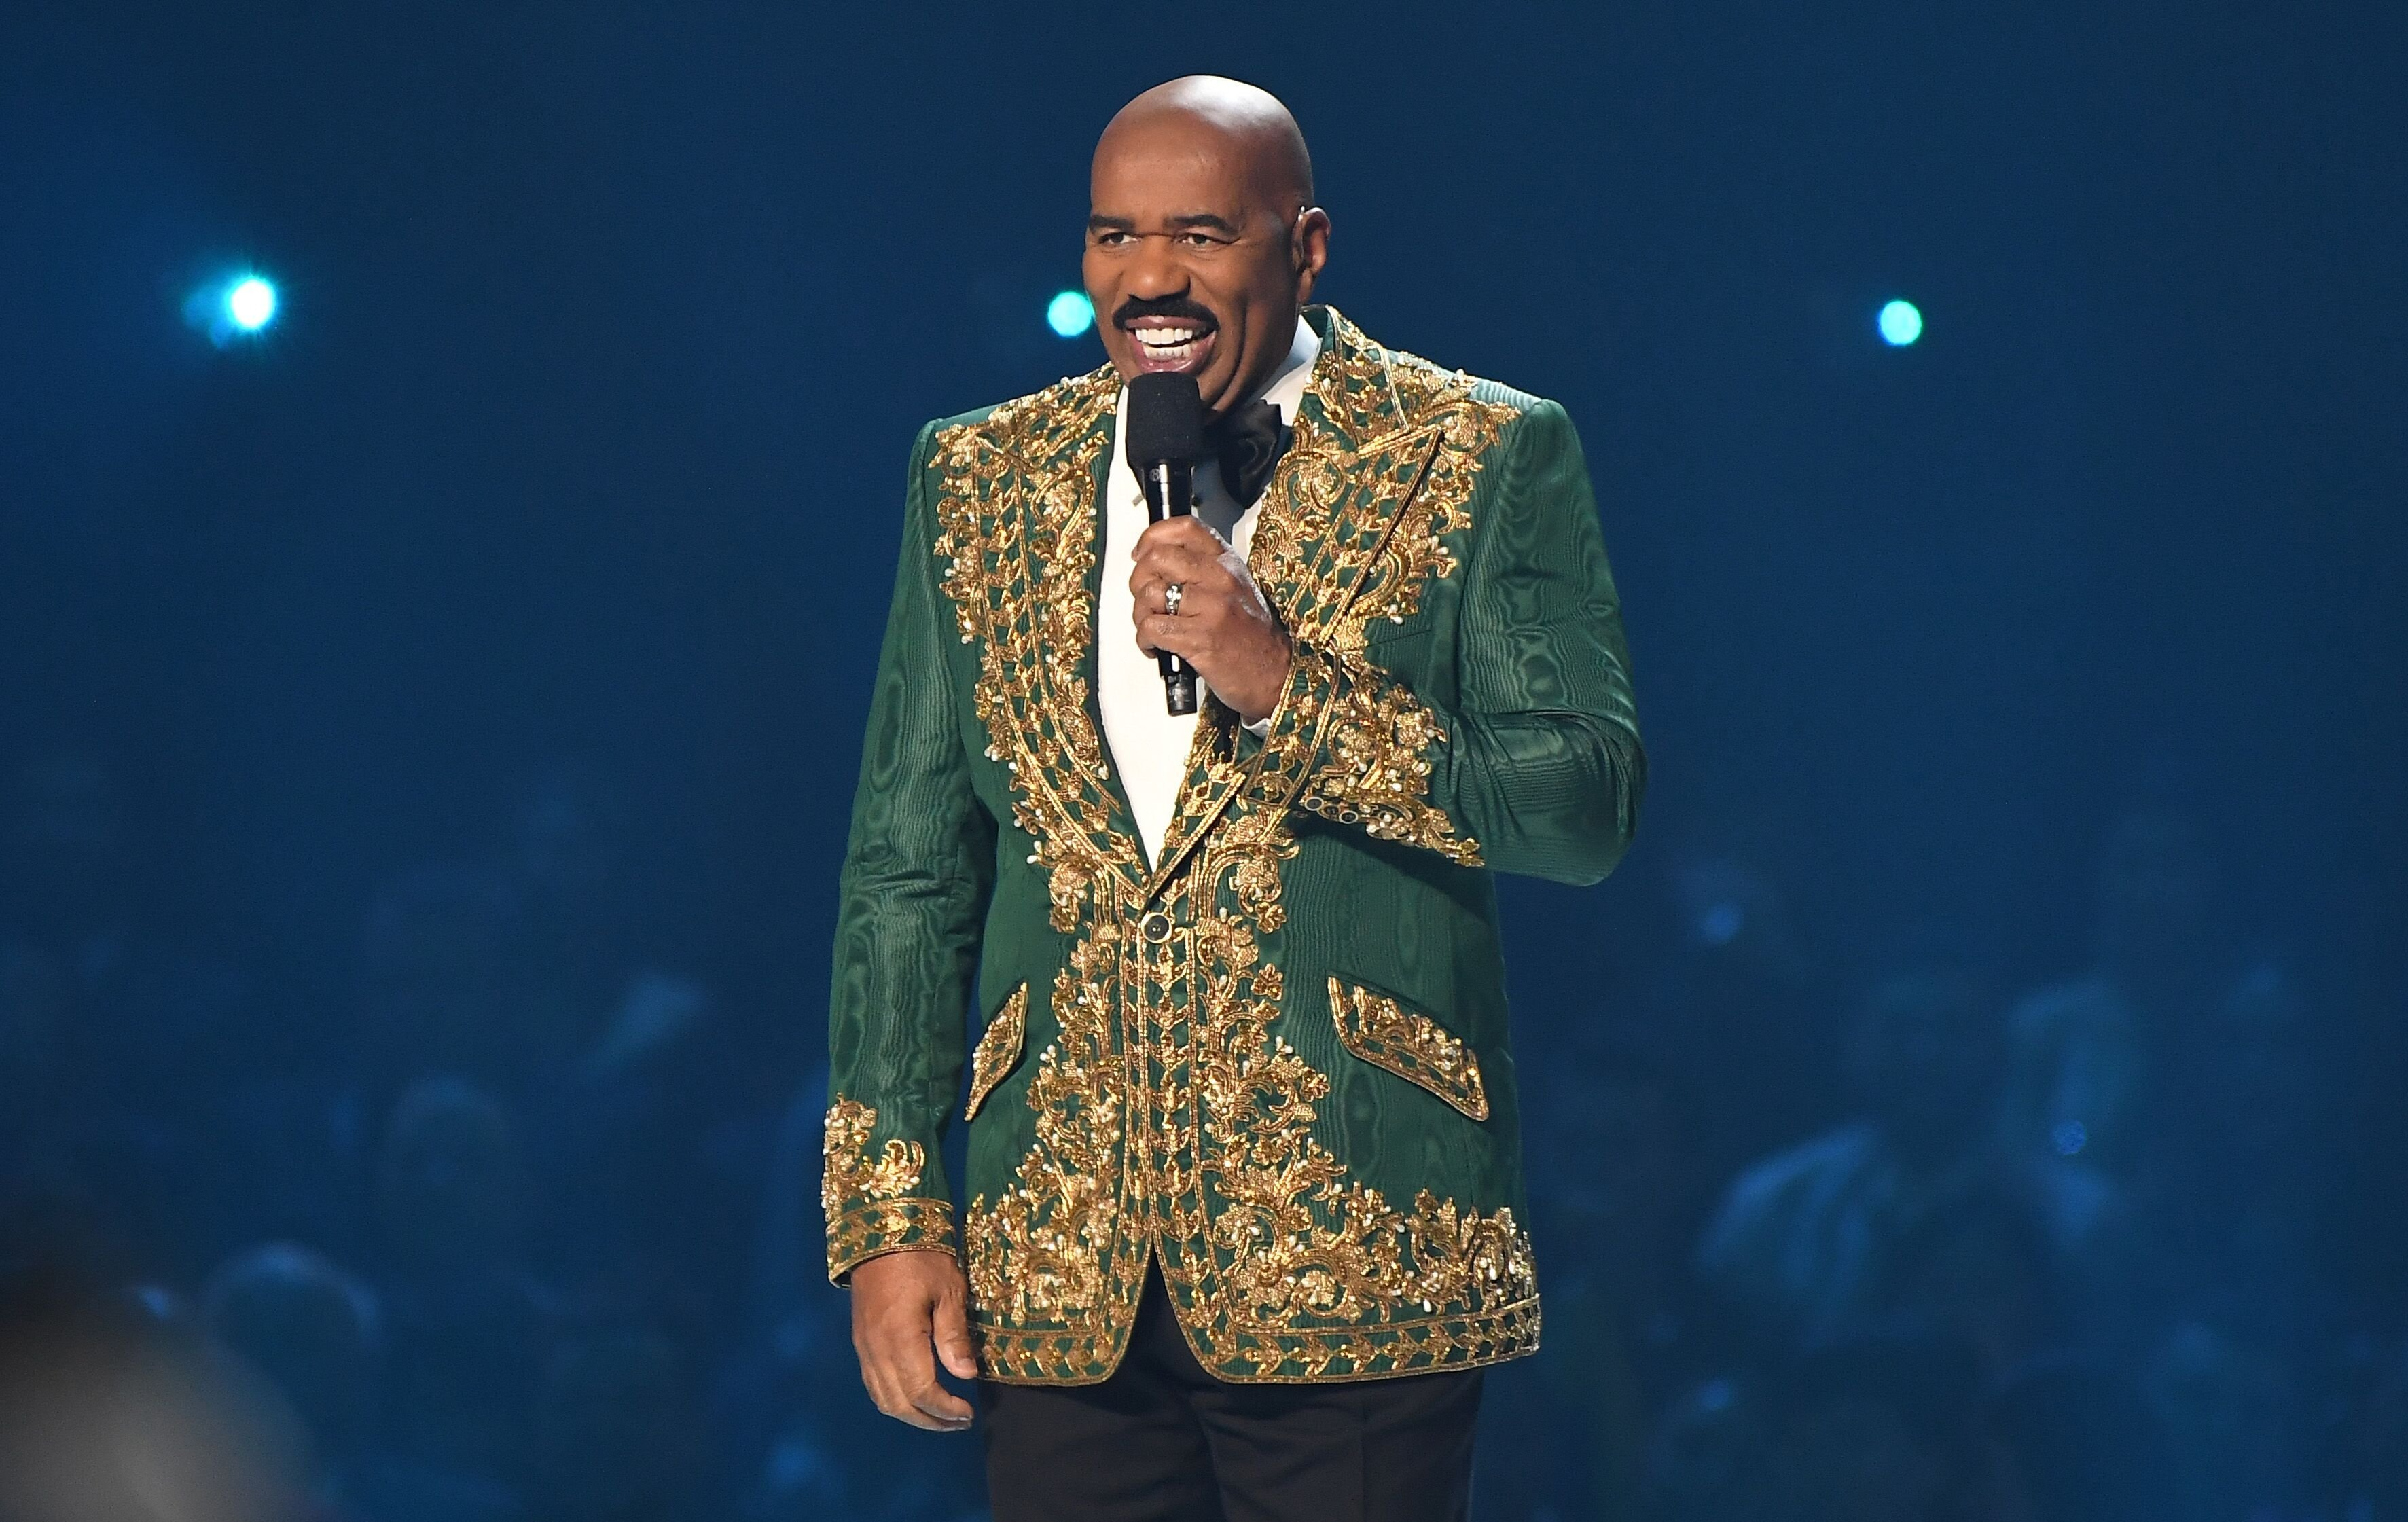 Steve Harvey hosting the Miss Universe 2019 event | Source: Getty Images/GlobalImagesUkraine